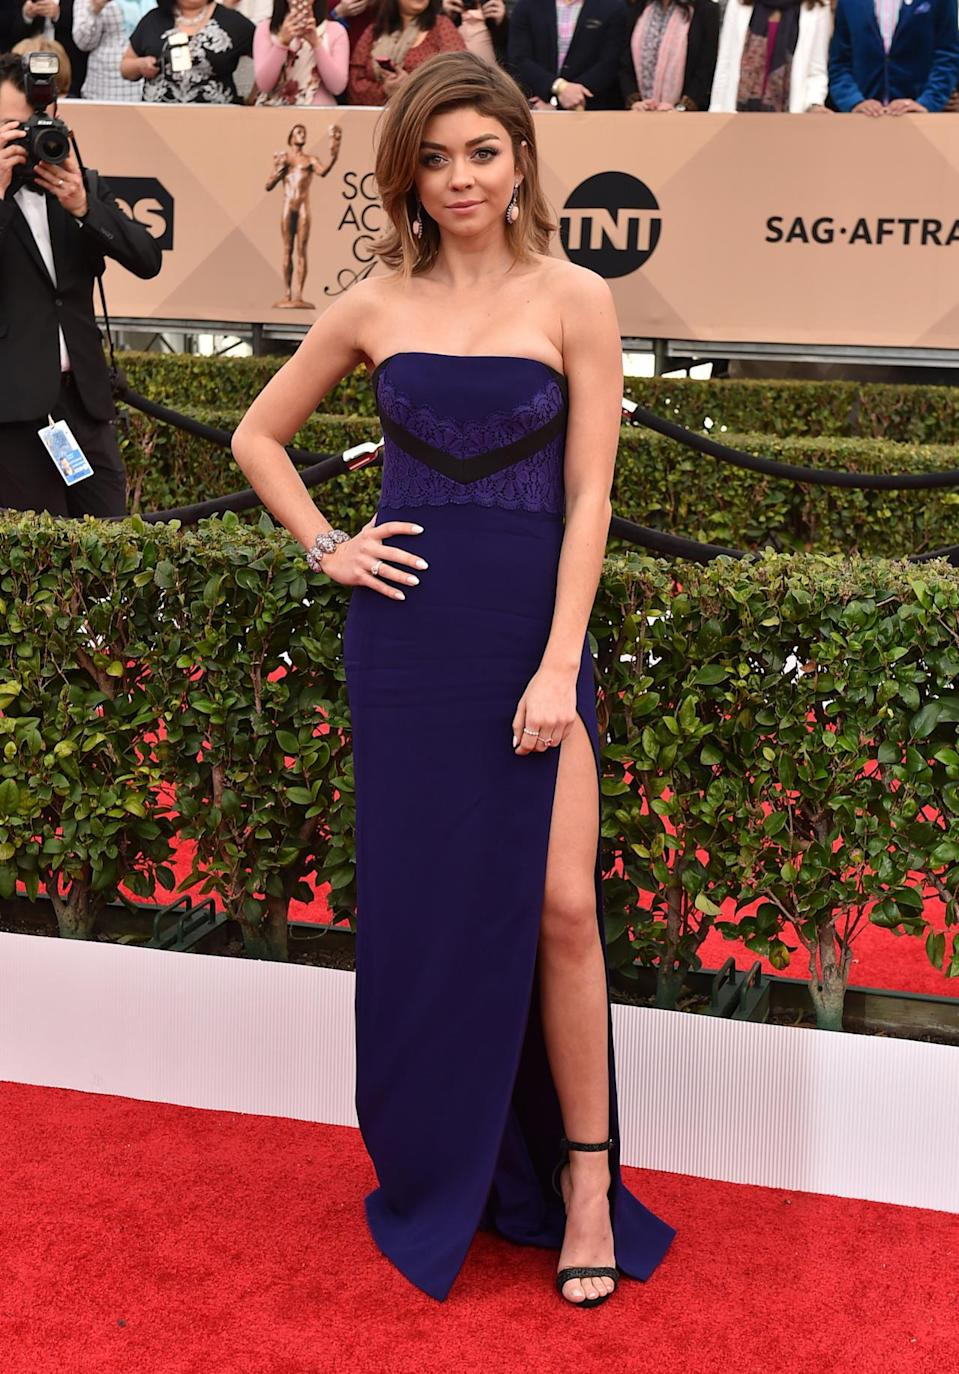 """<p>Sarah Hyland, wearing a J. Mendel gown with a thigh-high slit, described her look as """"Angliena Joleg."""" Hiding underneath the number is a new tattoo that says """"follow my heartbeat"""" from the musical <i>Hair</i>, which she performed in at the Hollywood Bowl, and is situated in the """"underboob"""" area. She accessorized with Lorraine Schwartz and Ofira jewelry. <i>Photo: AP</i></p>"""